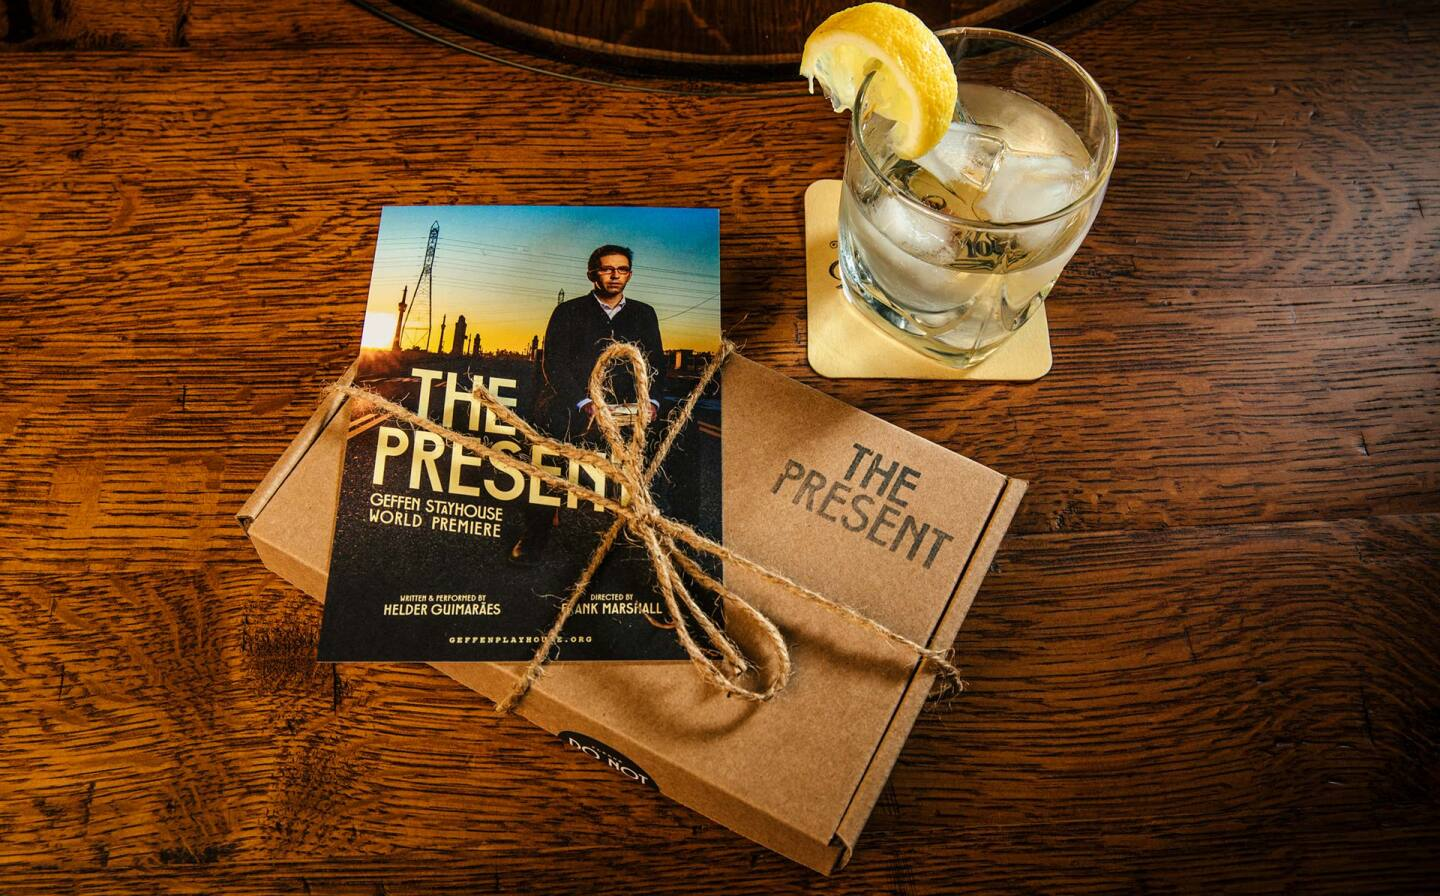 The Geffen Stayhouse production of The Present. Written and performed by Helder Guimarães, directed by Frank Marshall. | Geffen Playhouse